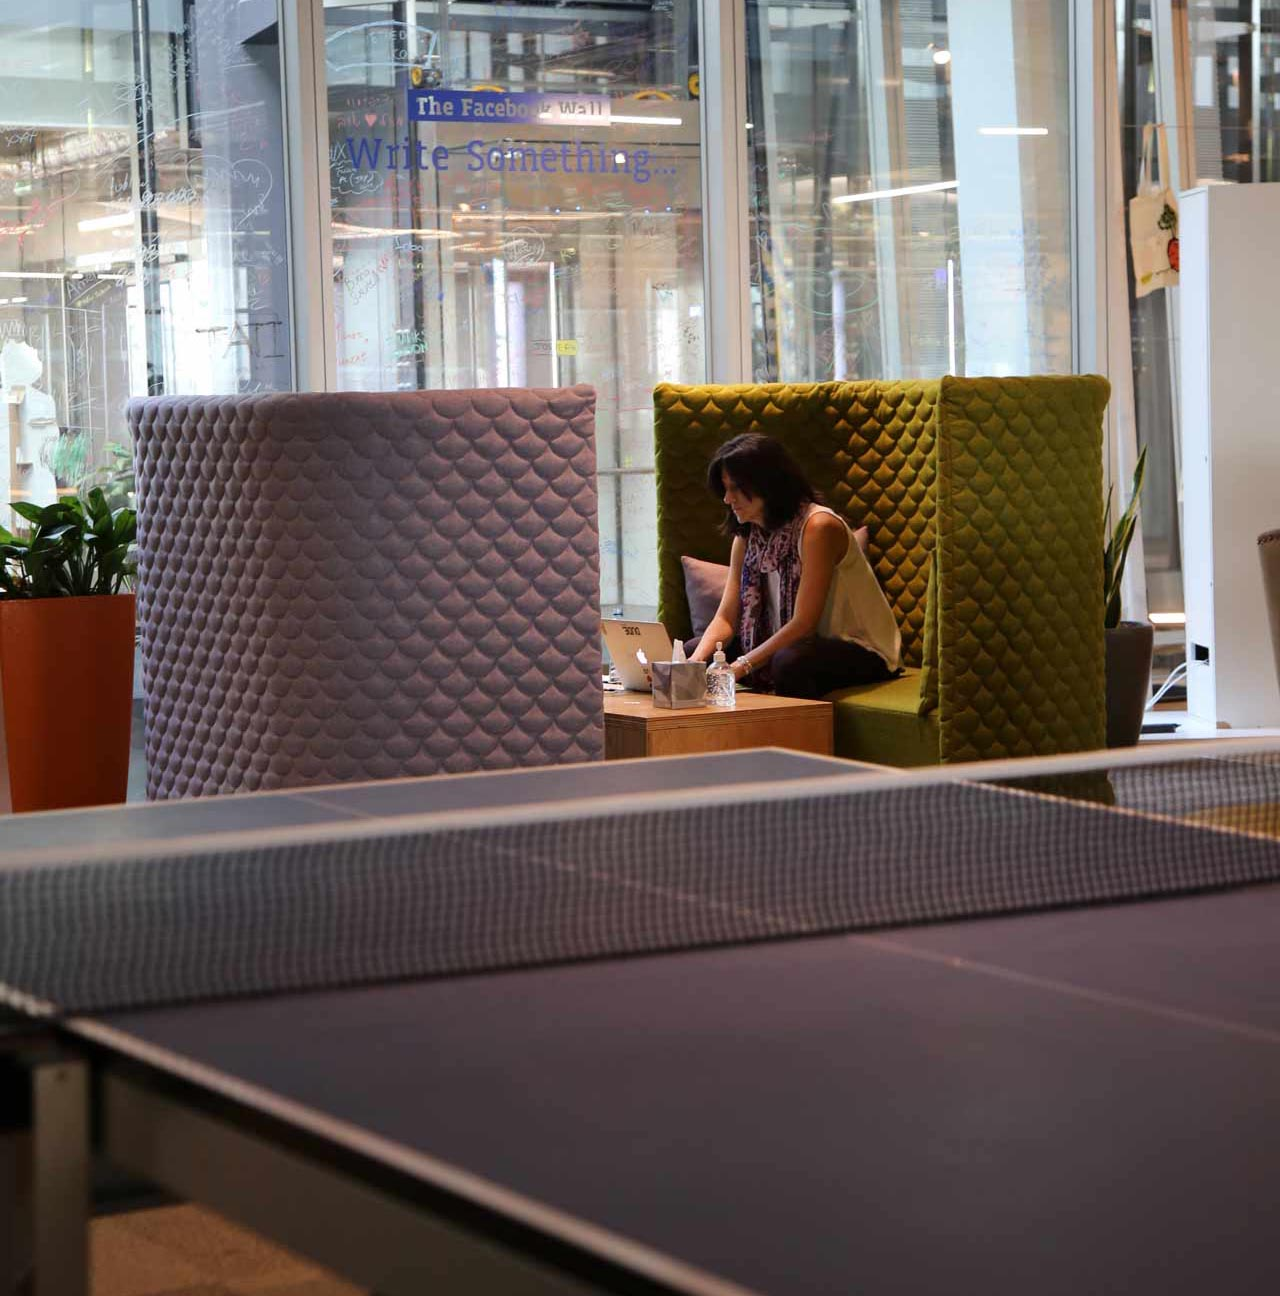 Facebook-Clouds-with-Ping-Pong-Table